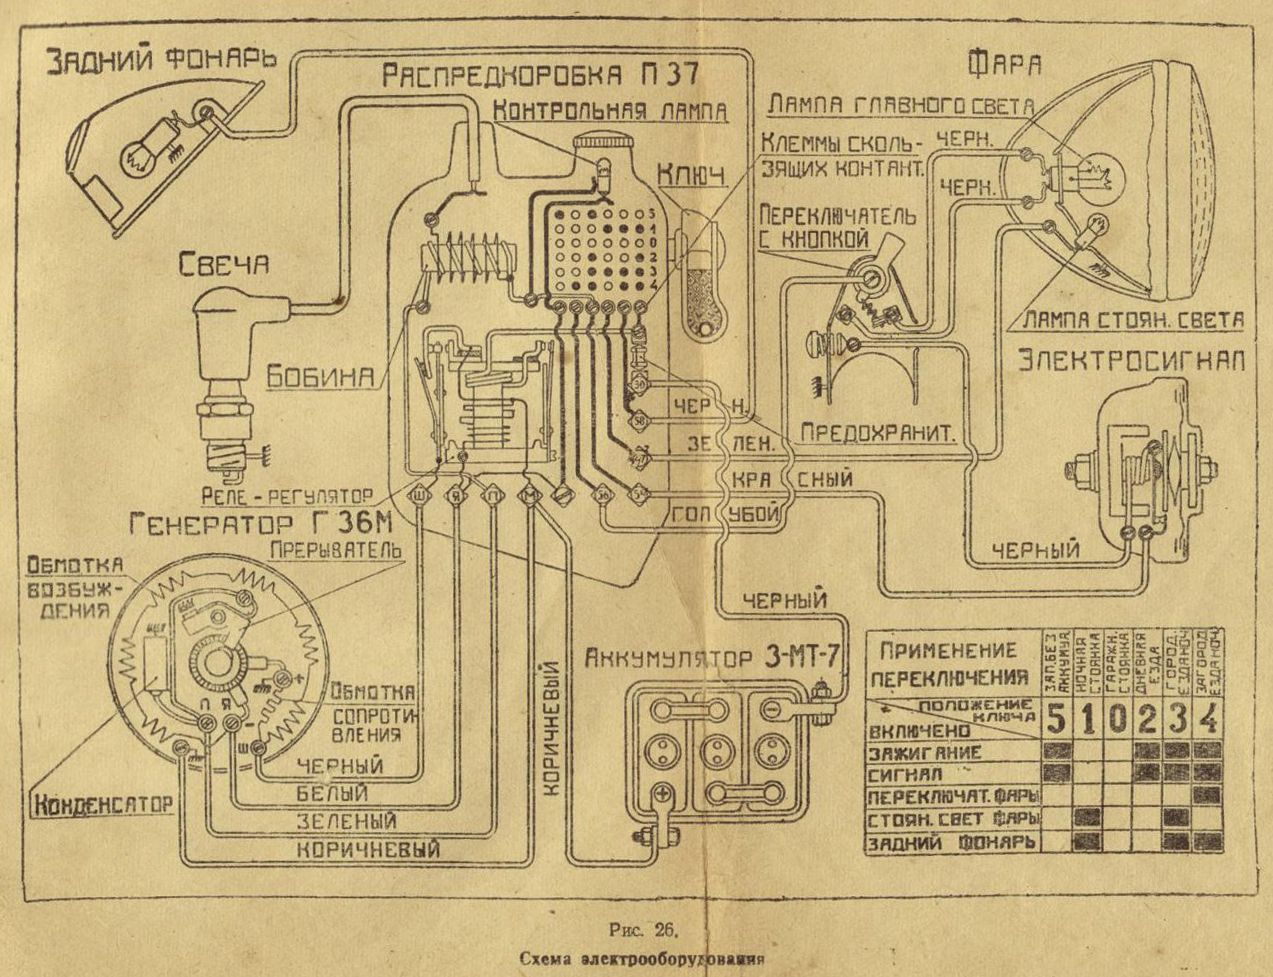 Wiring diagram Russian from the Izh-49 manual